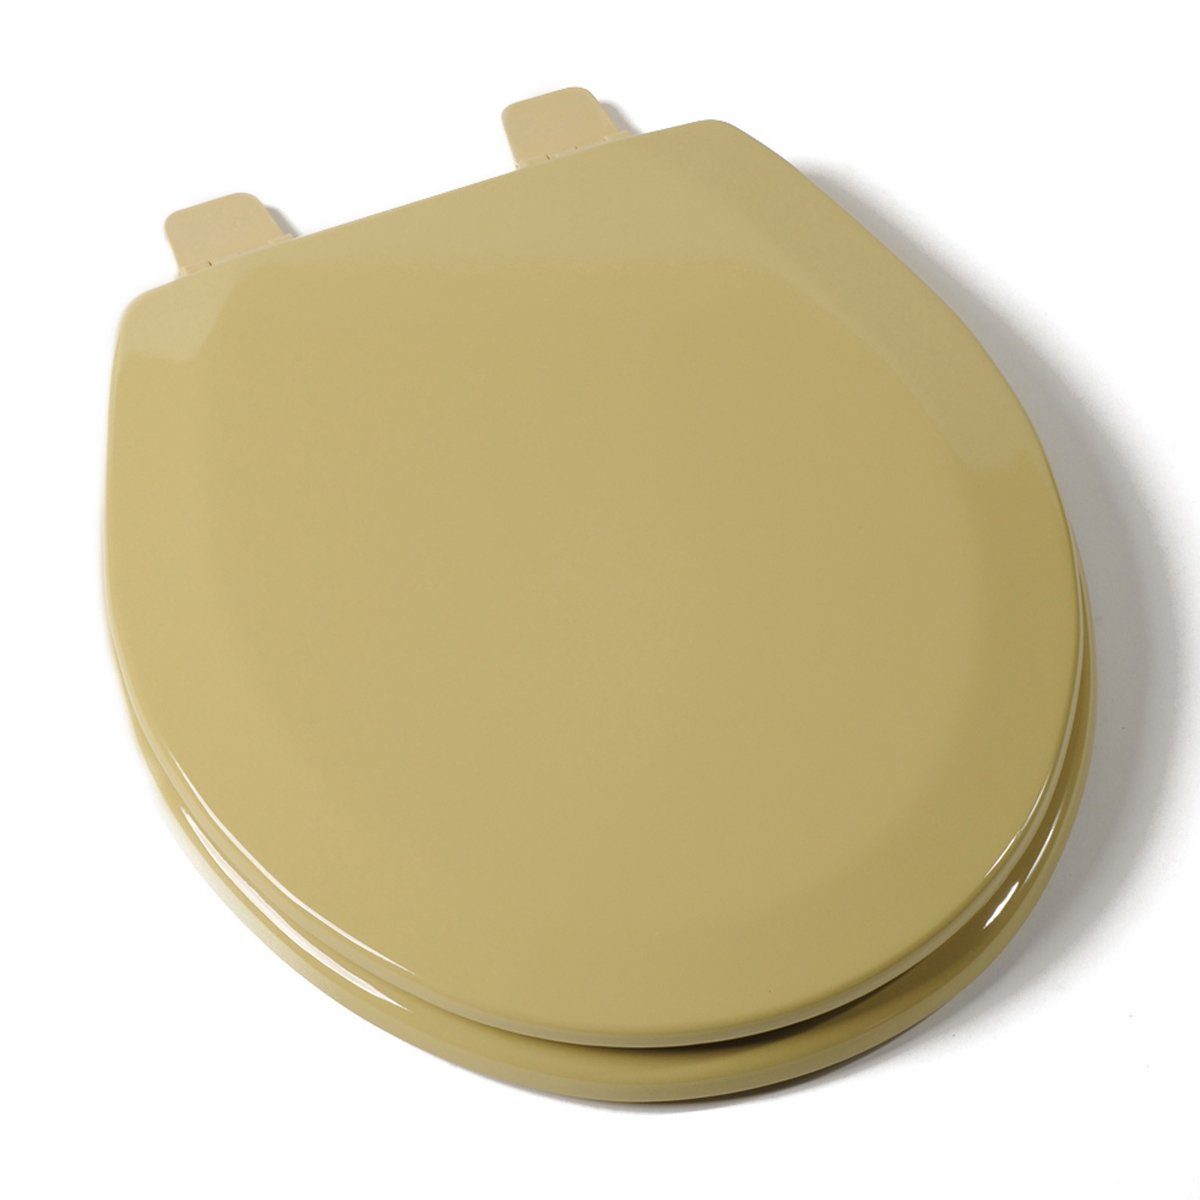 solid gold toilet seat.  Deluxe Harvest Gold Wood Round Toilet Seat Amazon com